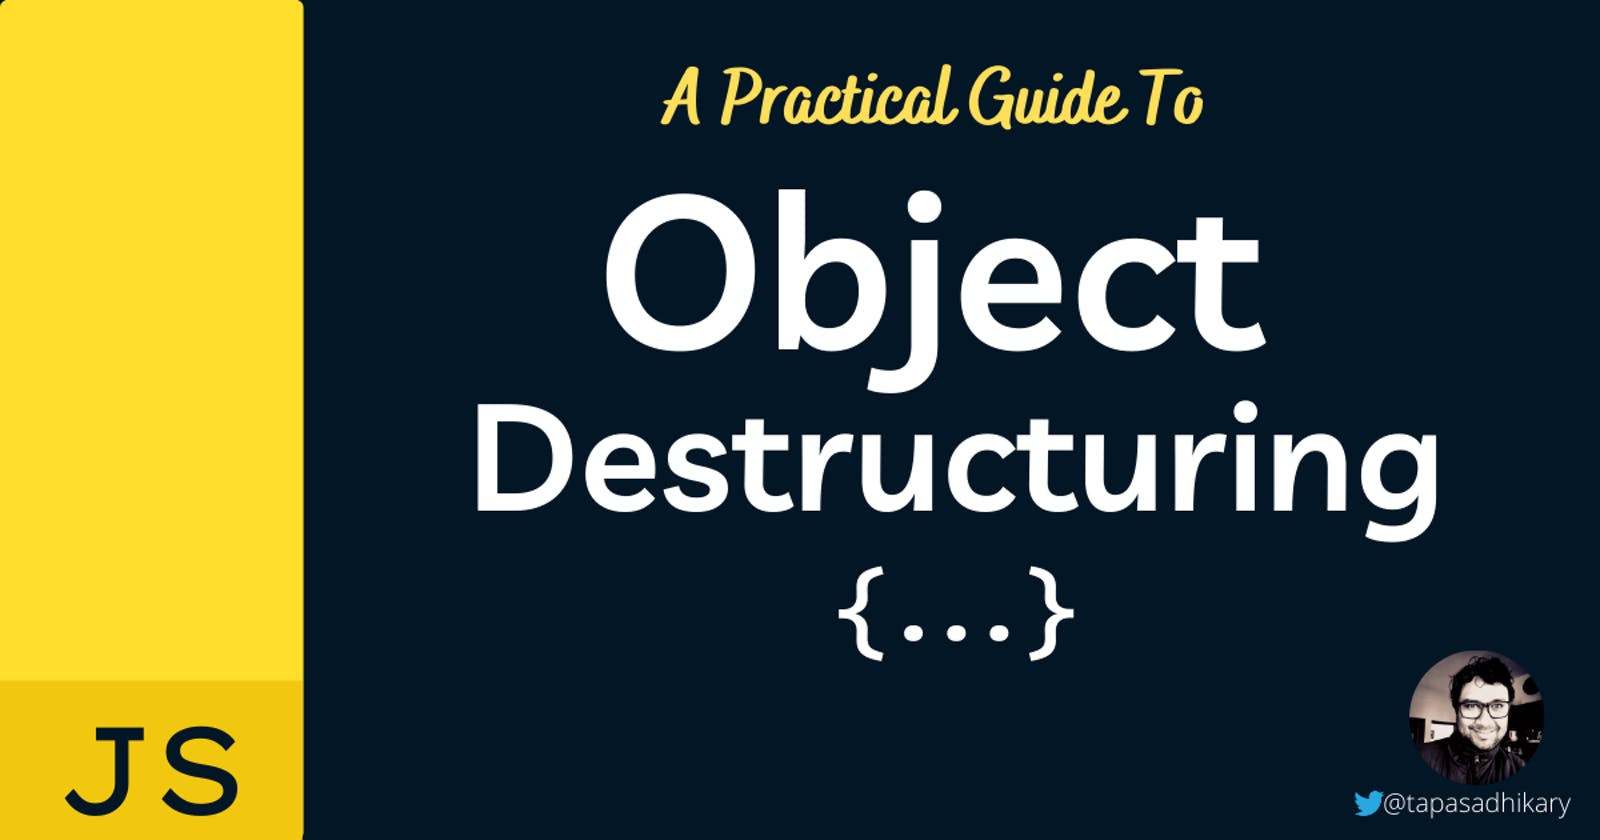 A practical guide to object destructuring in JavaScript